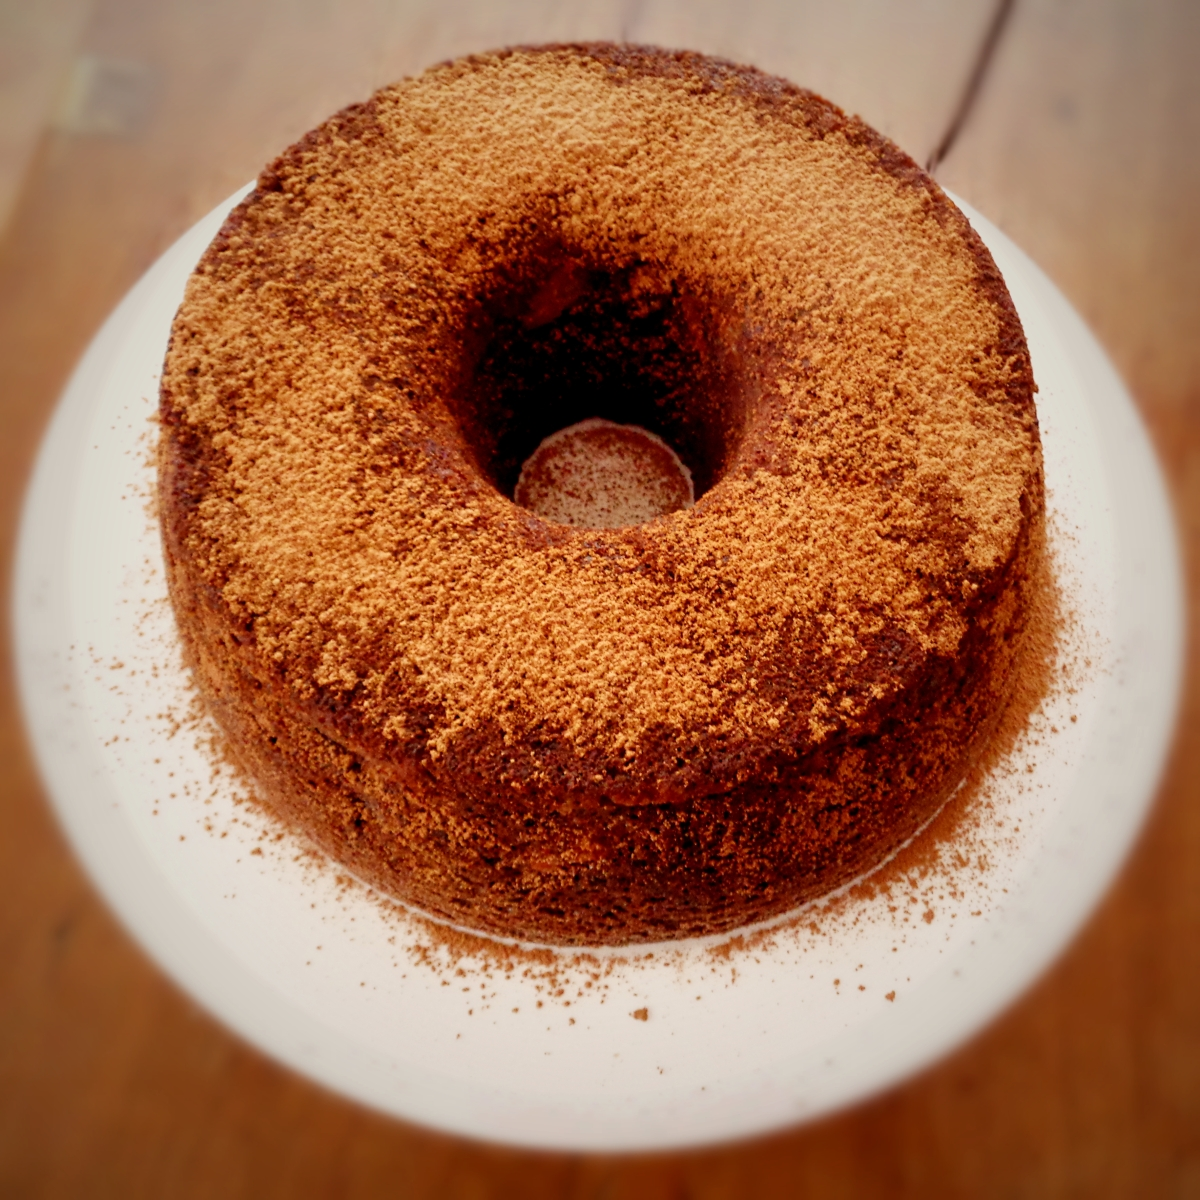 Bolo de maçã, noz e alfarroba / Apple, walnut and carob cake